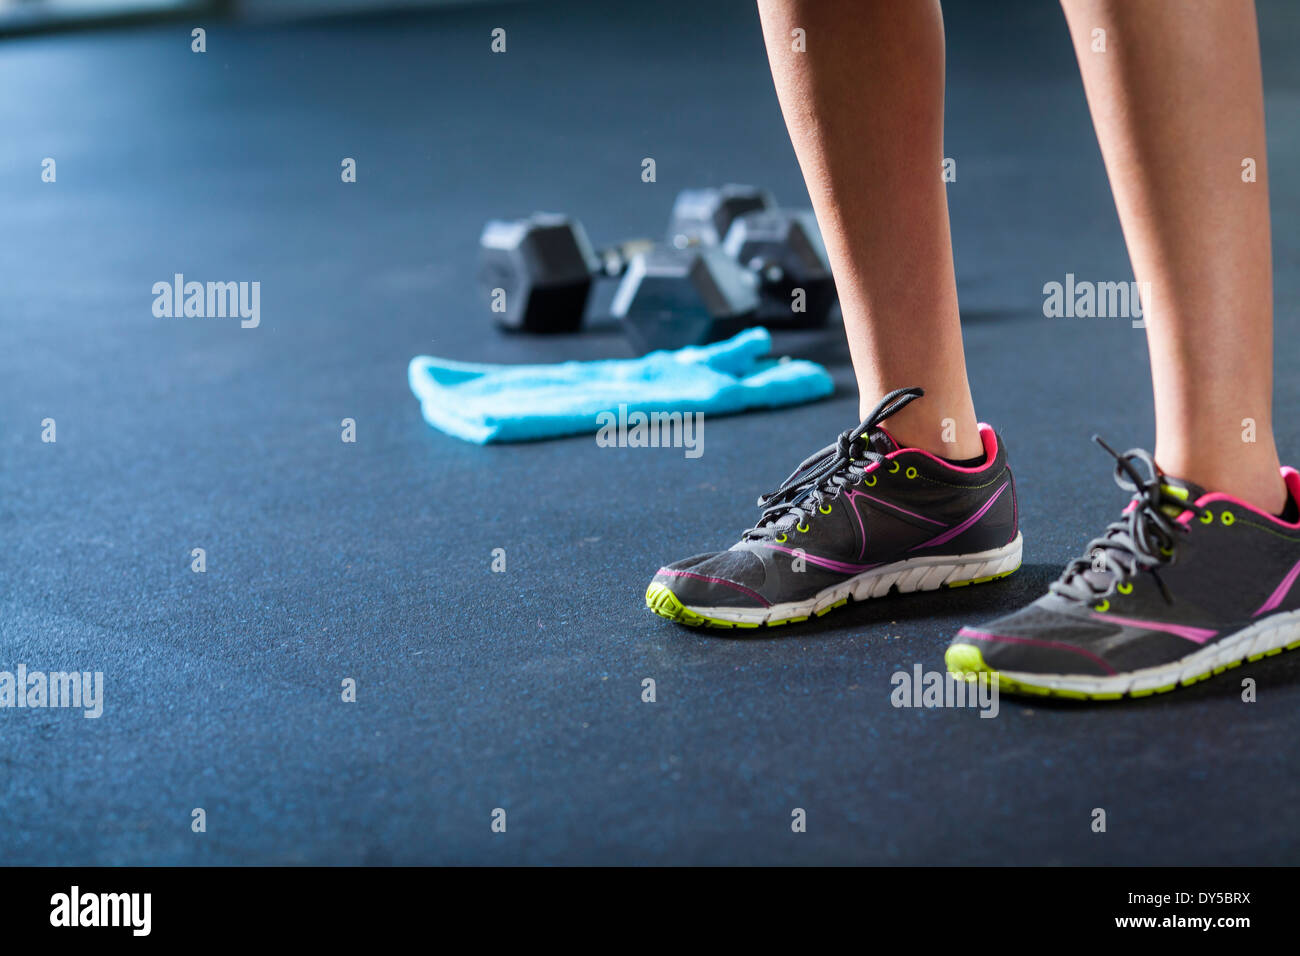 Sports shoes, weights, towel - Stock Image